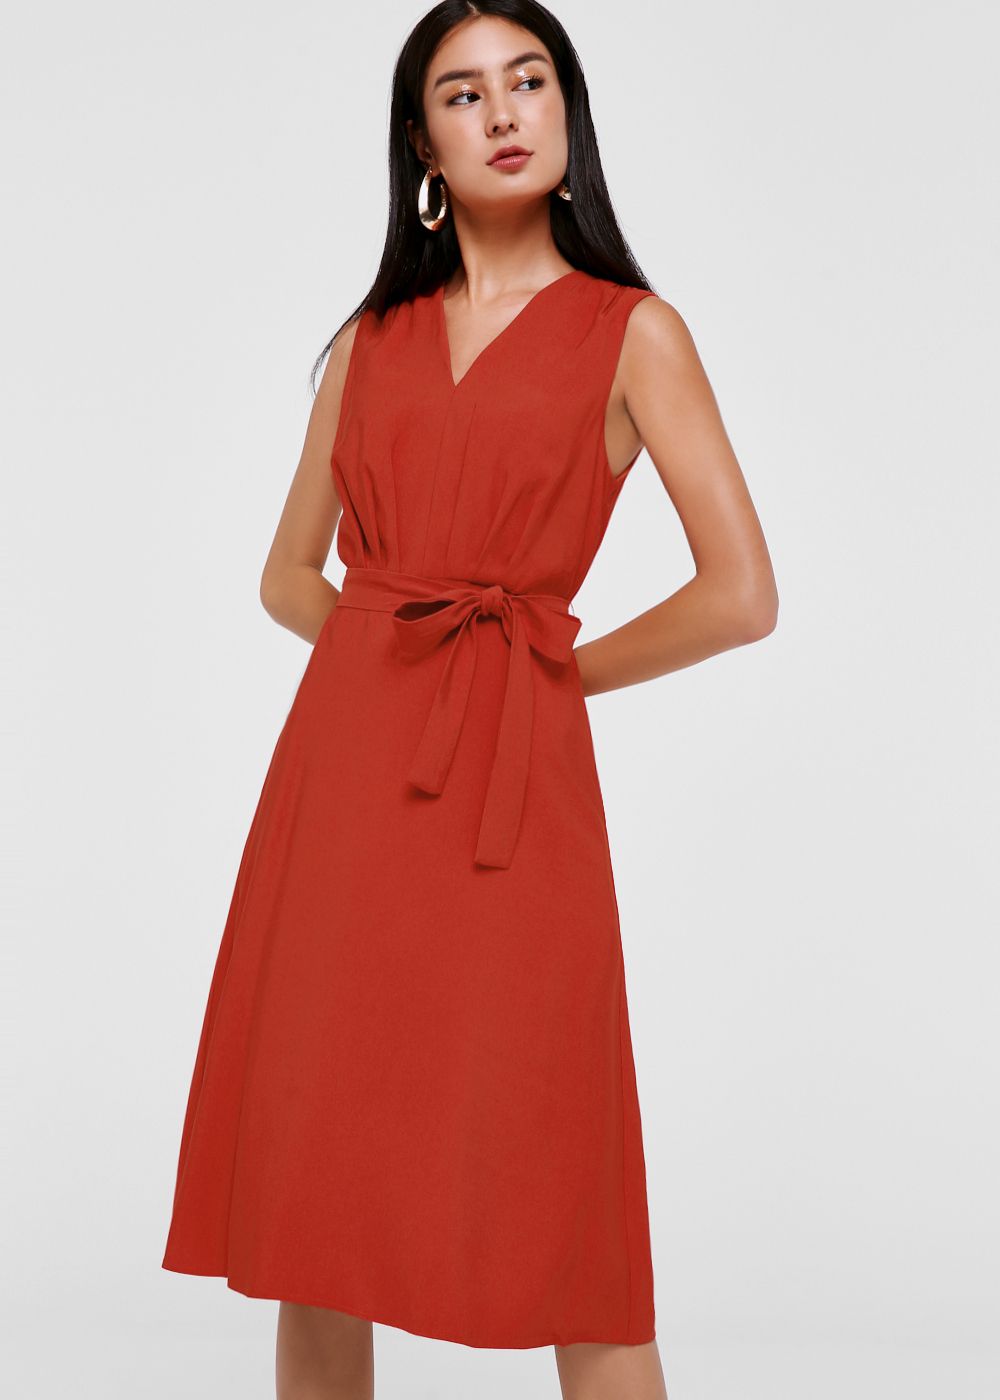 Pedra Tie Front Midi Dress